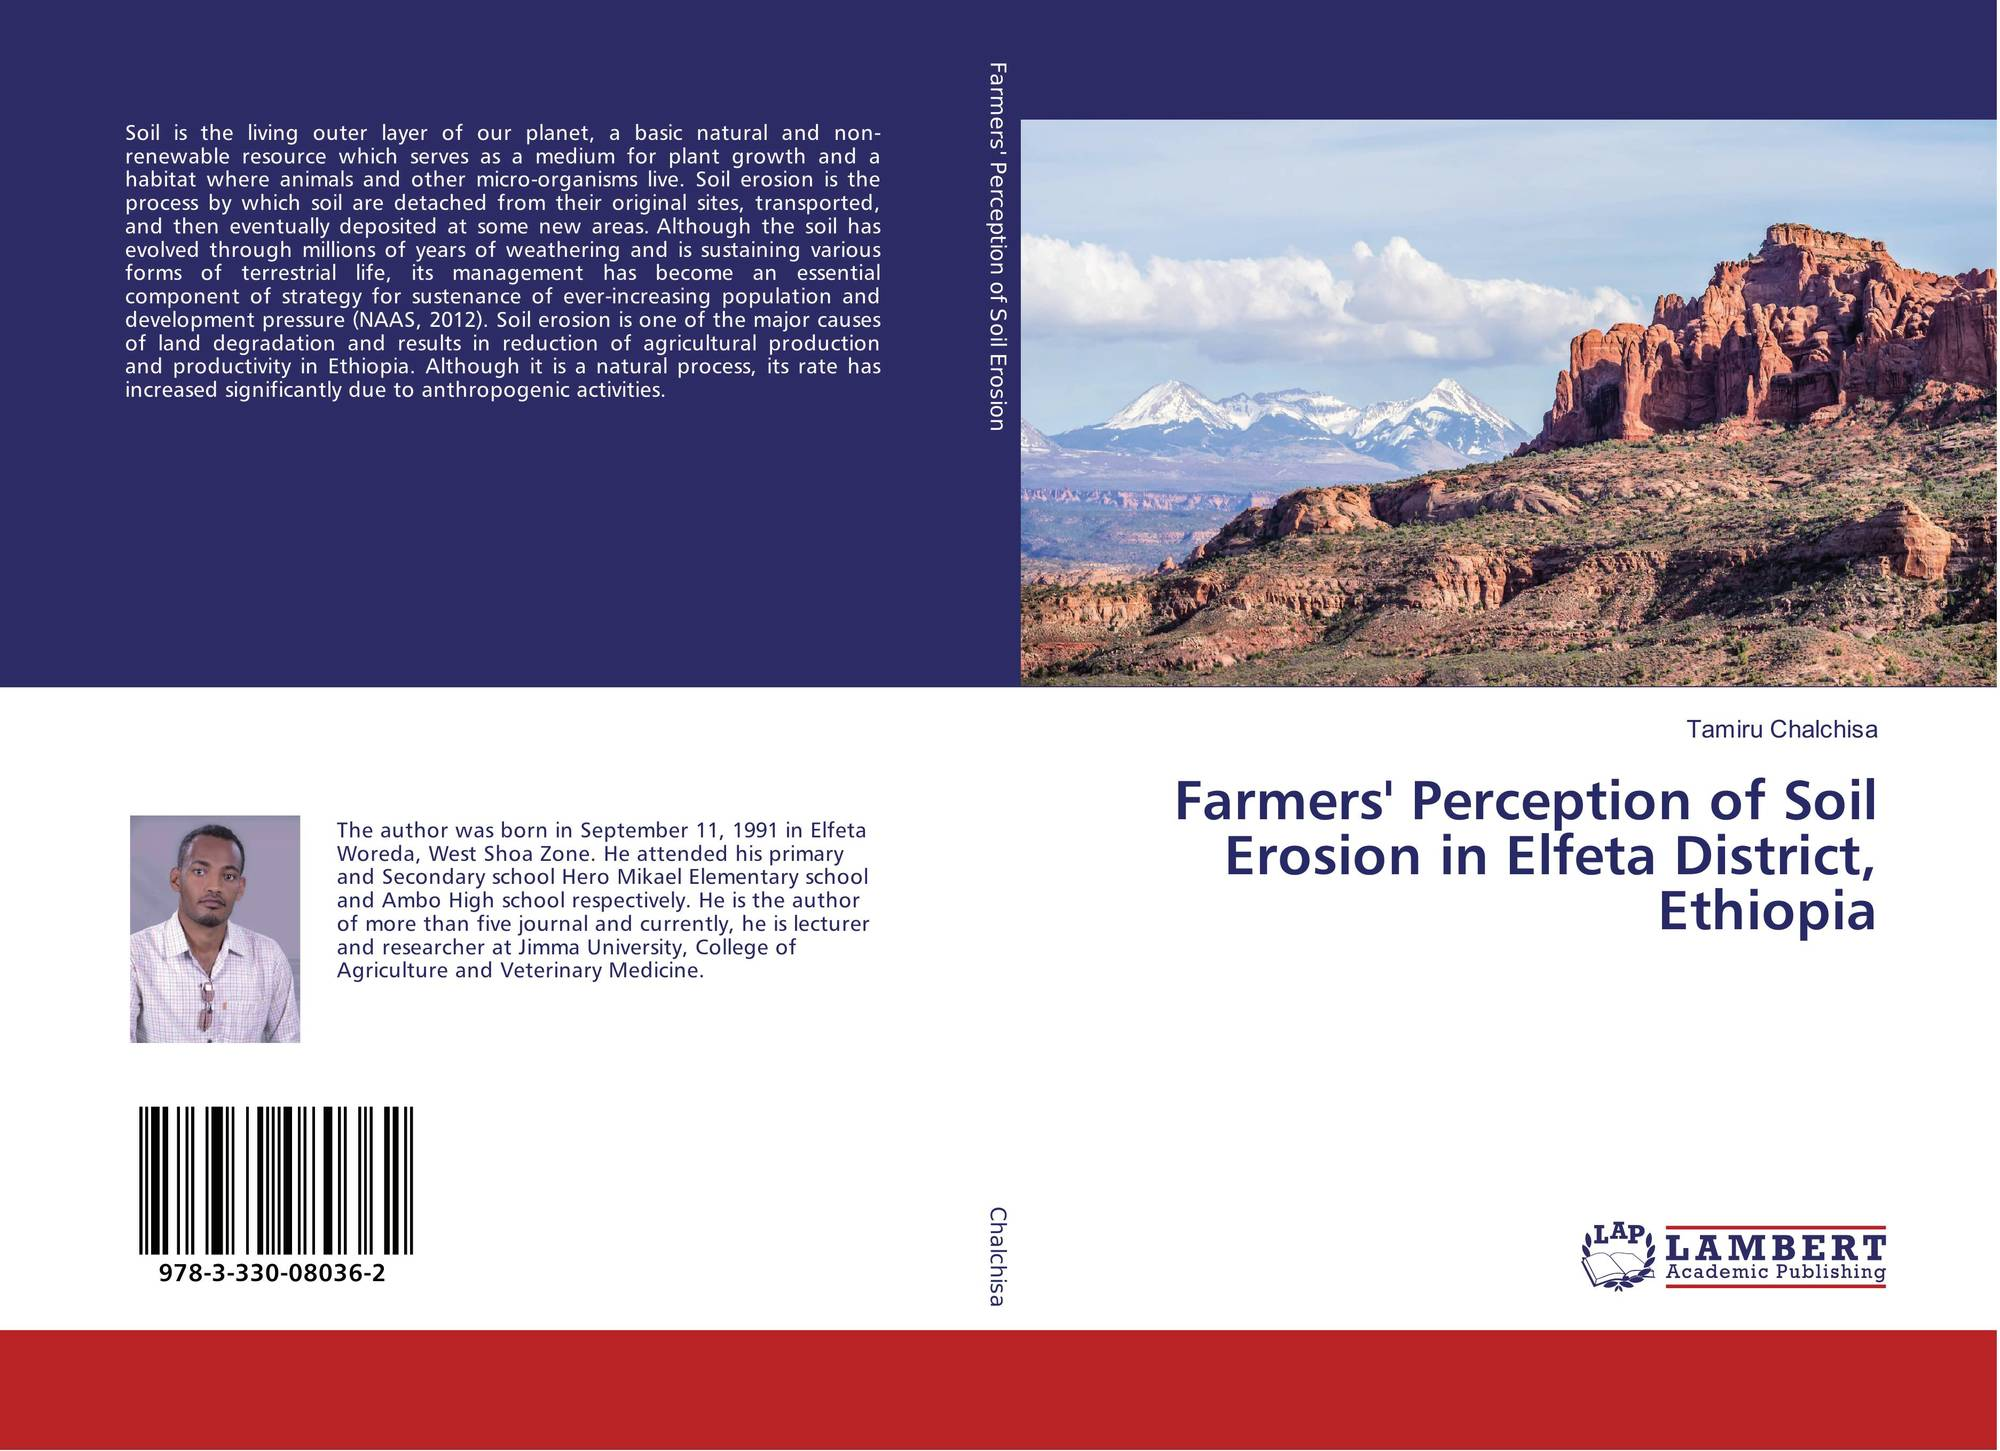 ethiopia soil degradation and overpopulation Overpopulation: overpopulation is a function of the number of individuals compared to the relevant resources, such as the reflective :1 environmental degradation any type of activities which alters the systems of the environment and he disturbances caused to air,water,soil and the eco systems is.